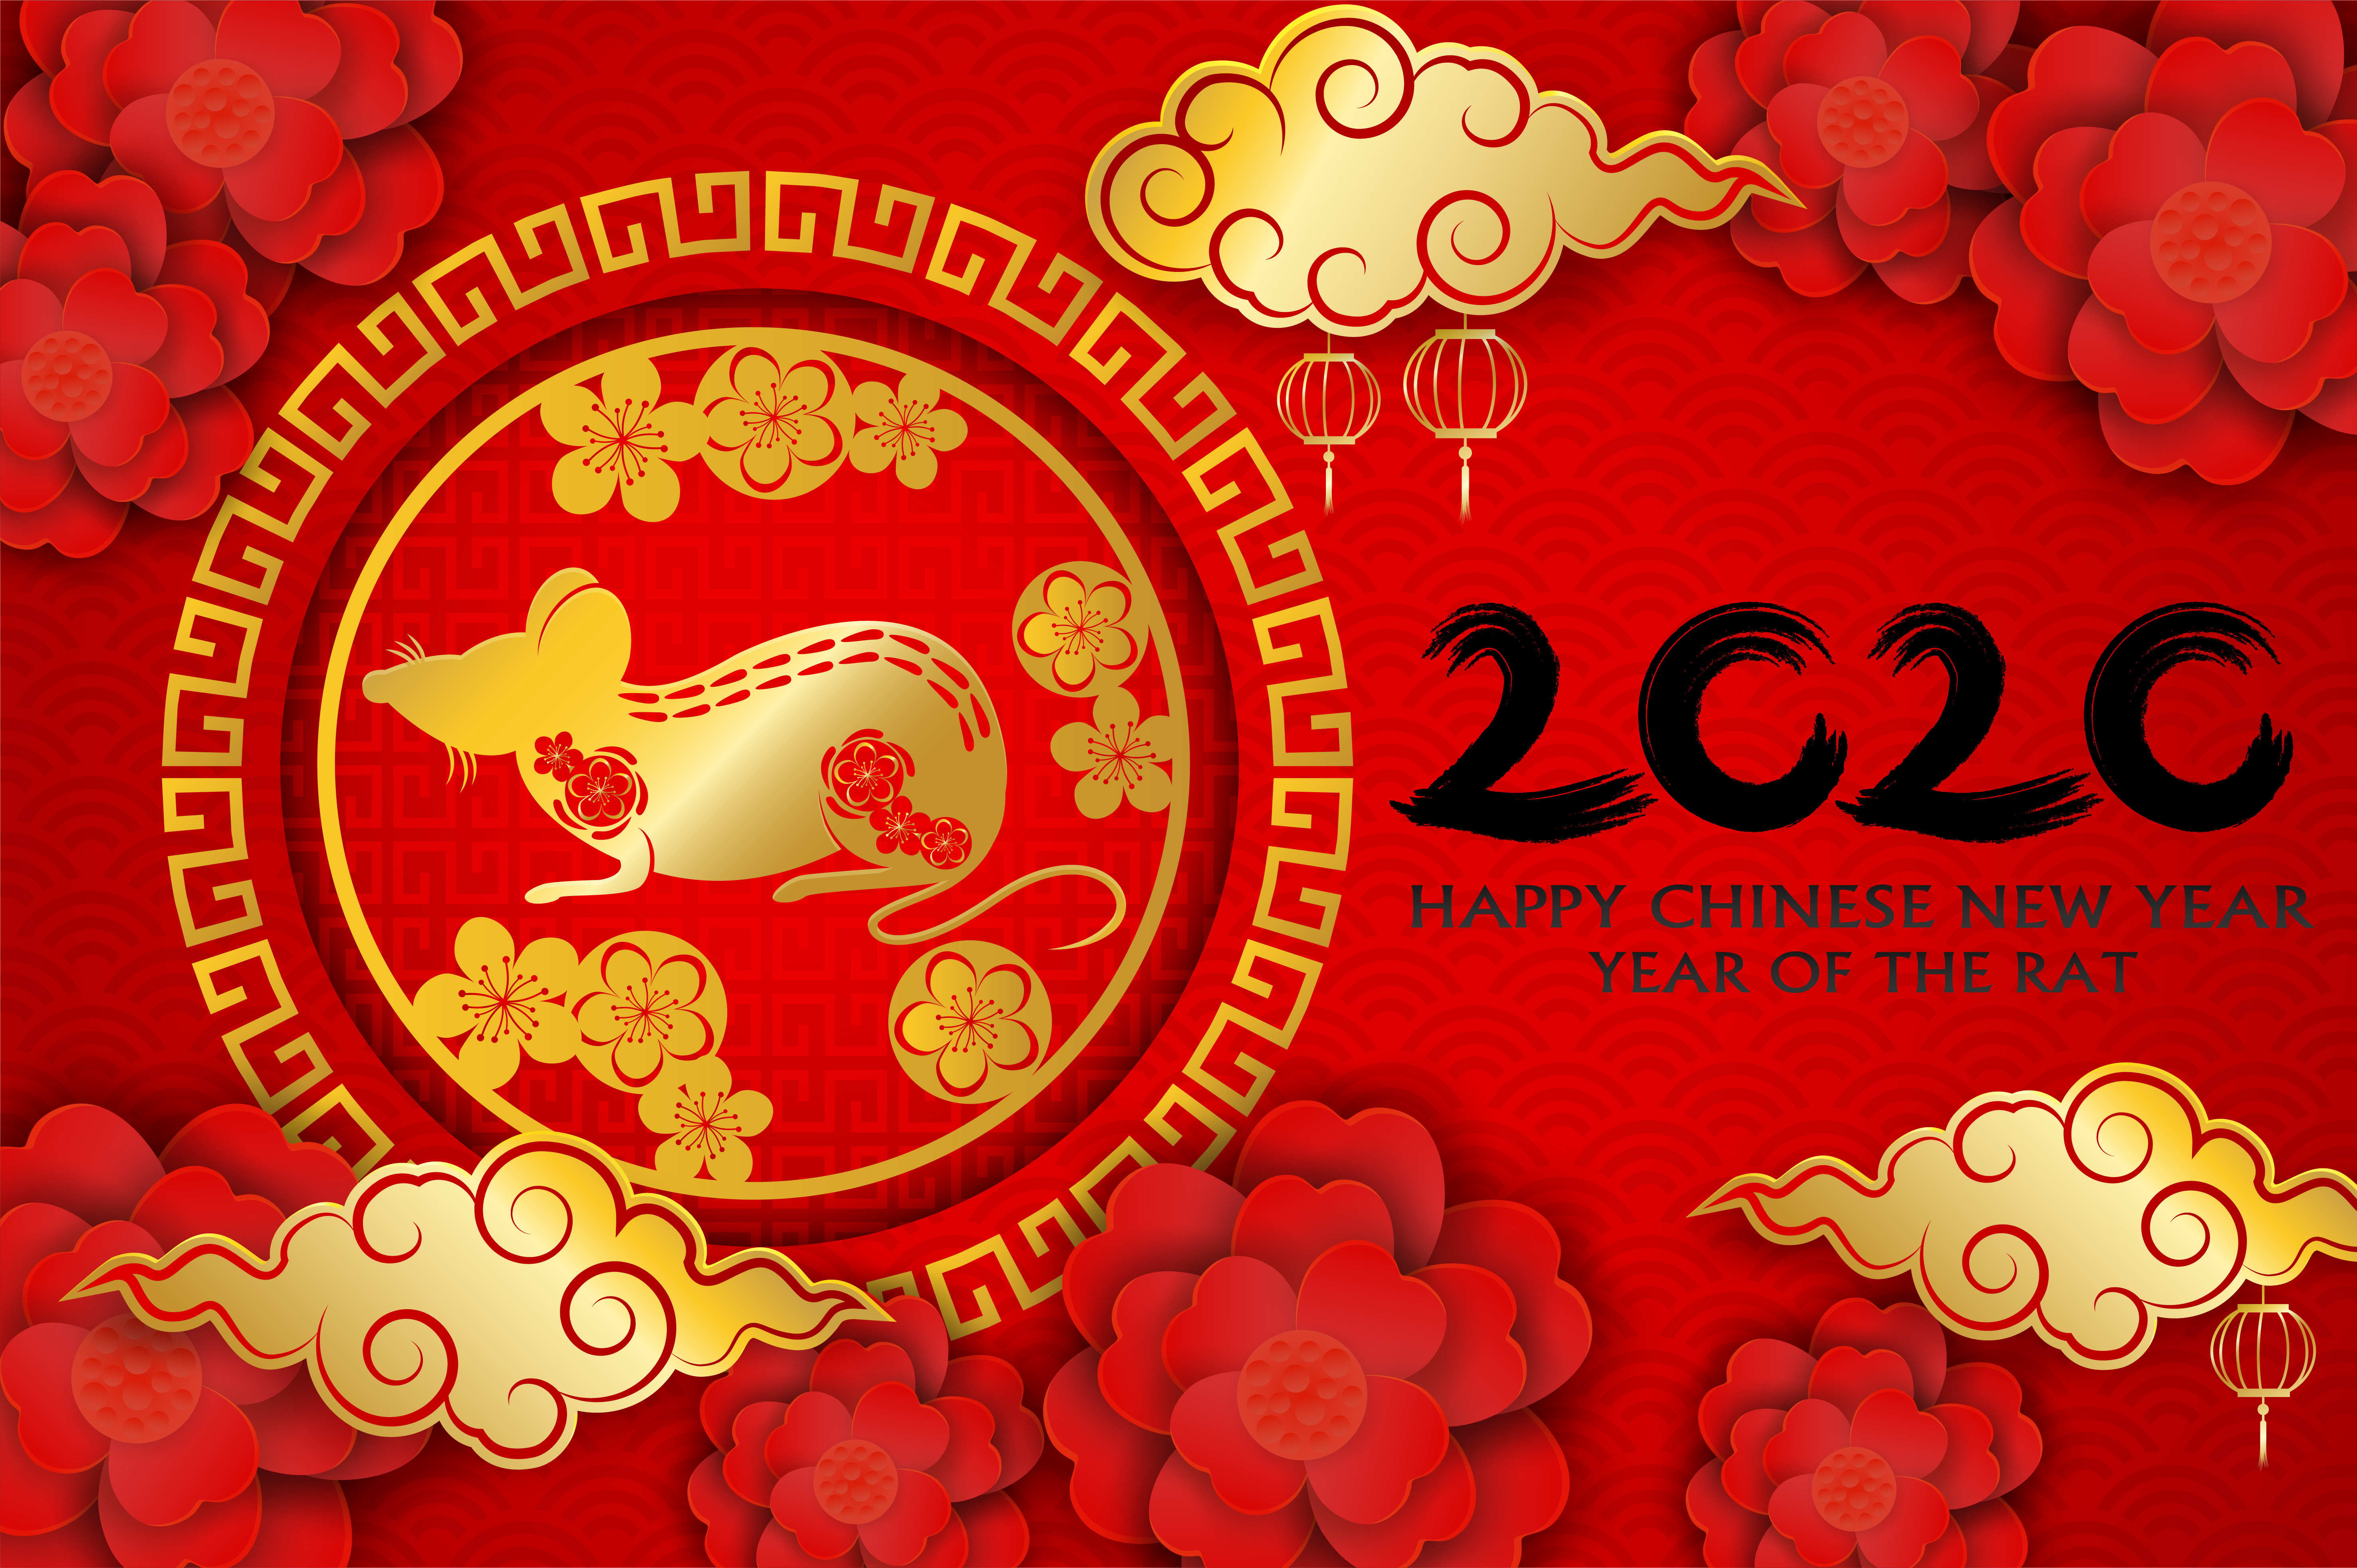 Chinese New Year 2020.2020 Happy Chinese New Year Design With Flowers And Rat On